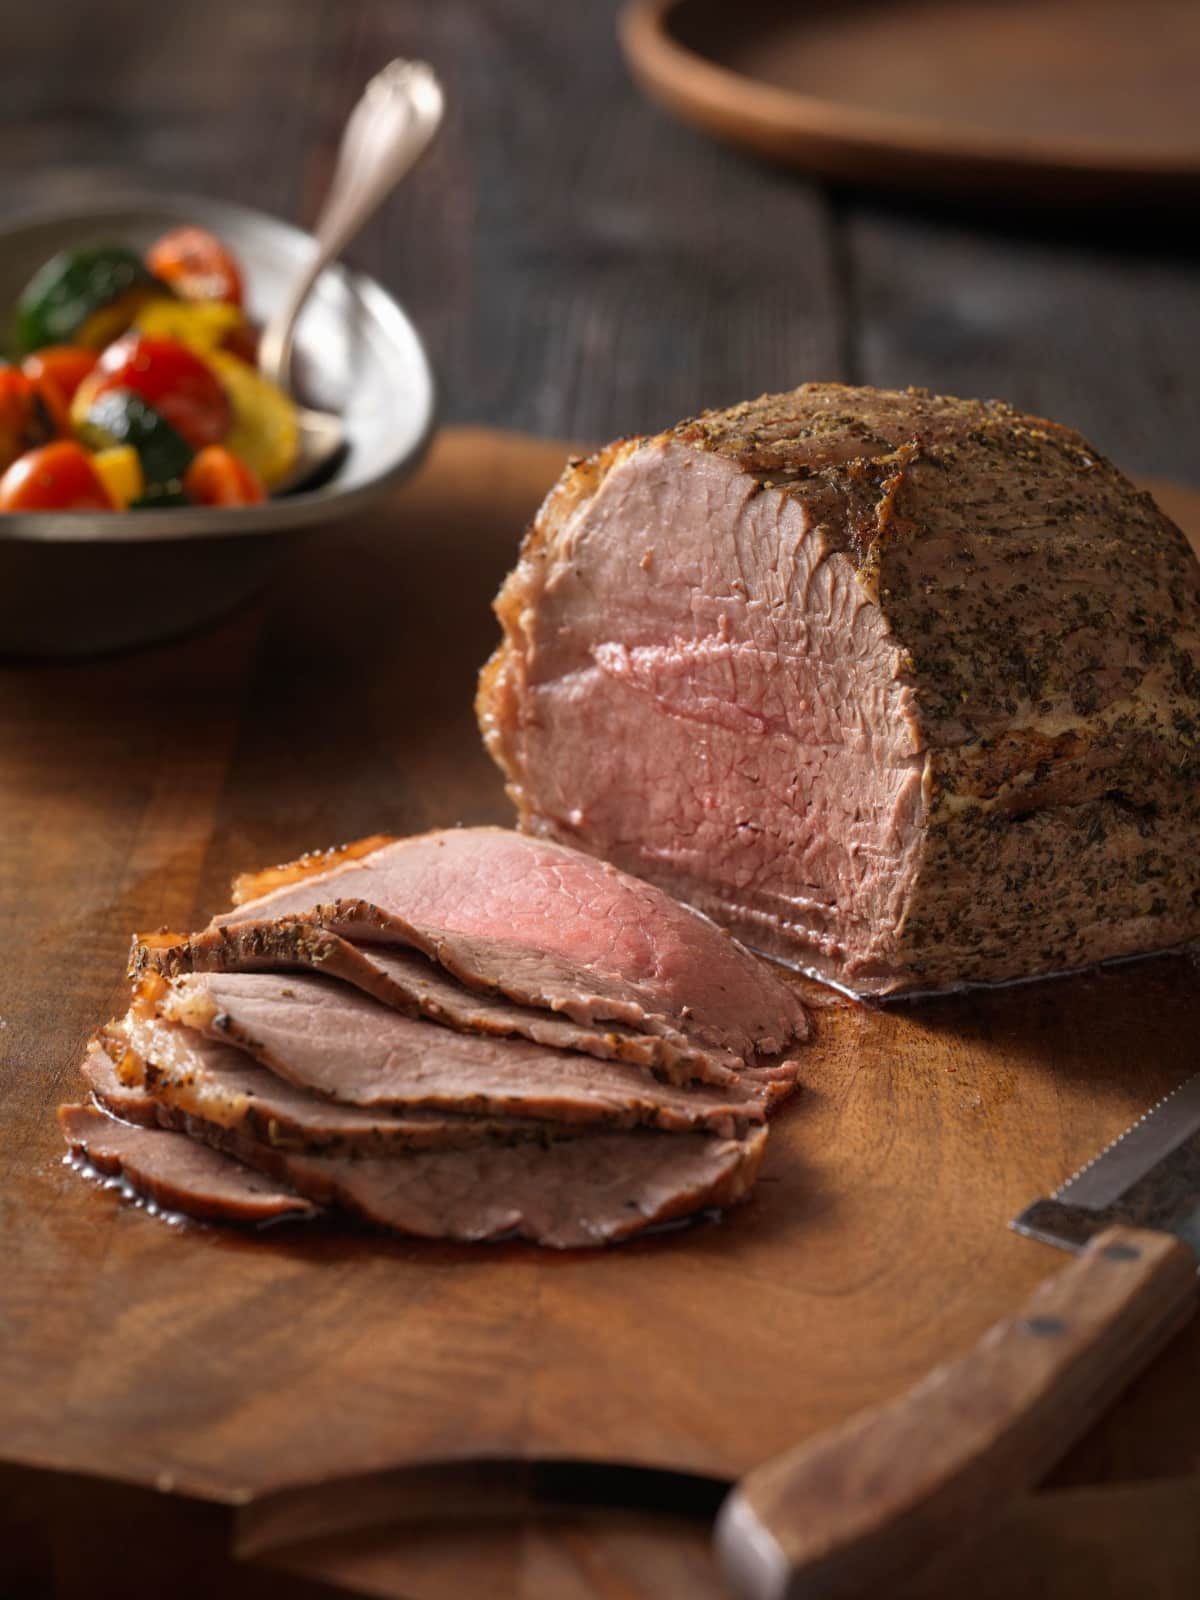 Carved top round roast on a wooden board with a bowl of mixed vegetables in the background.